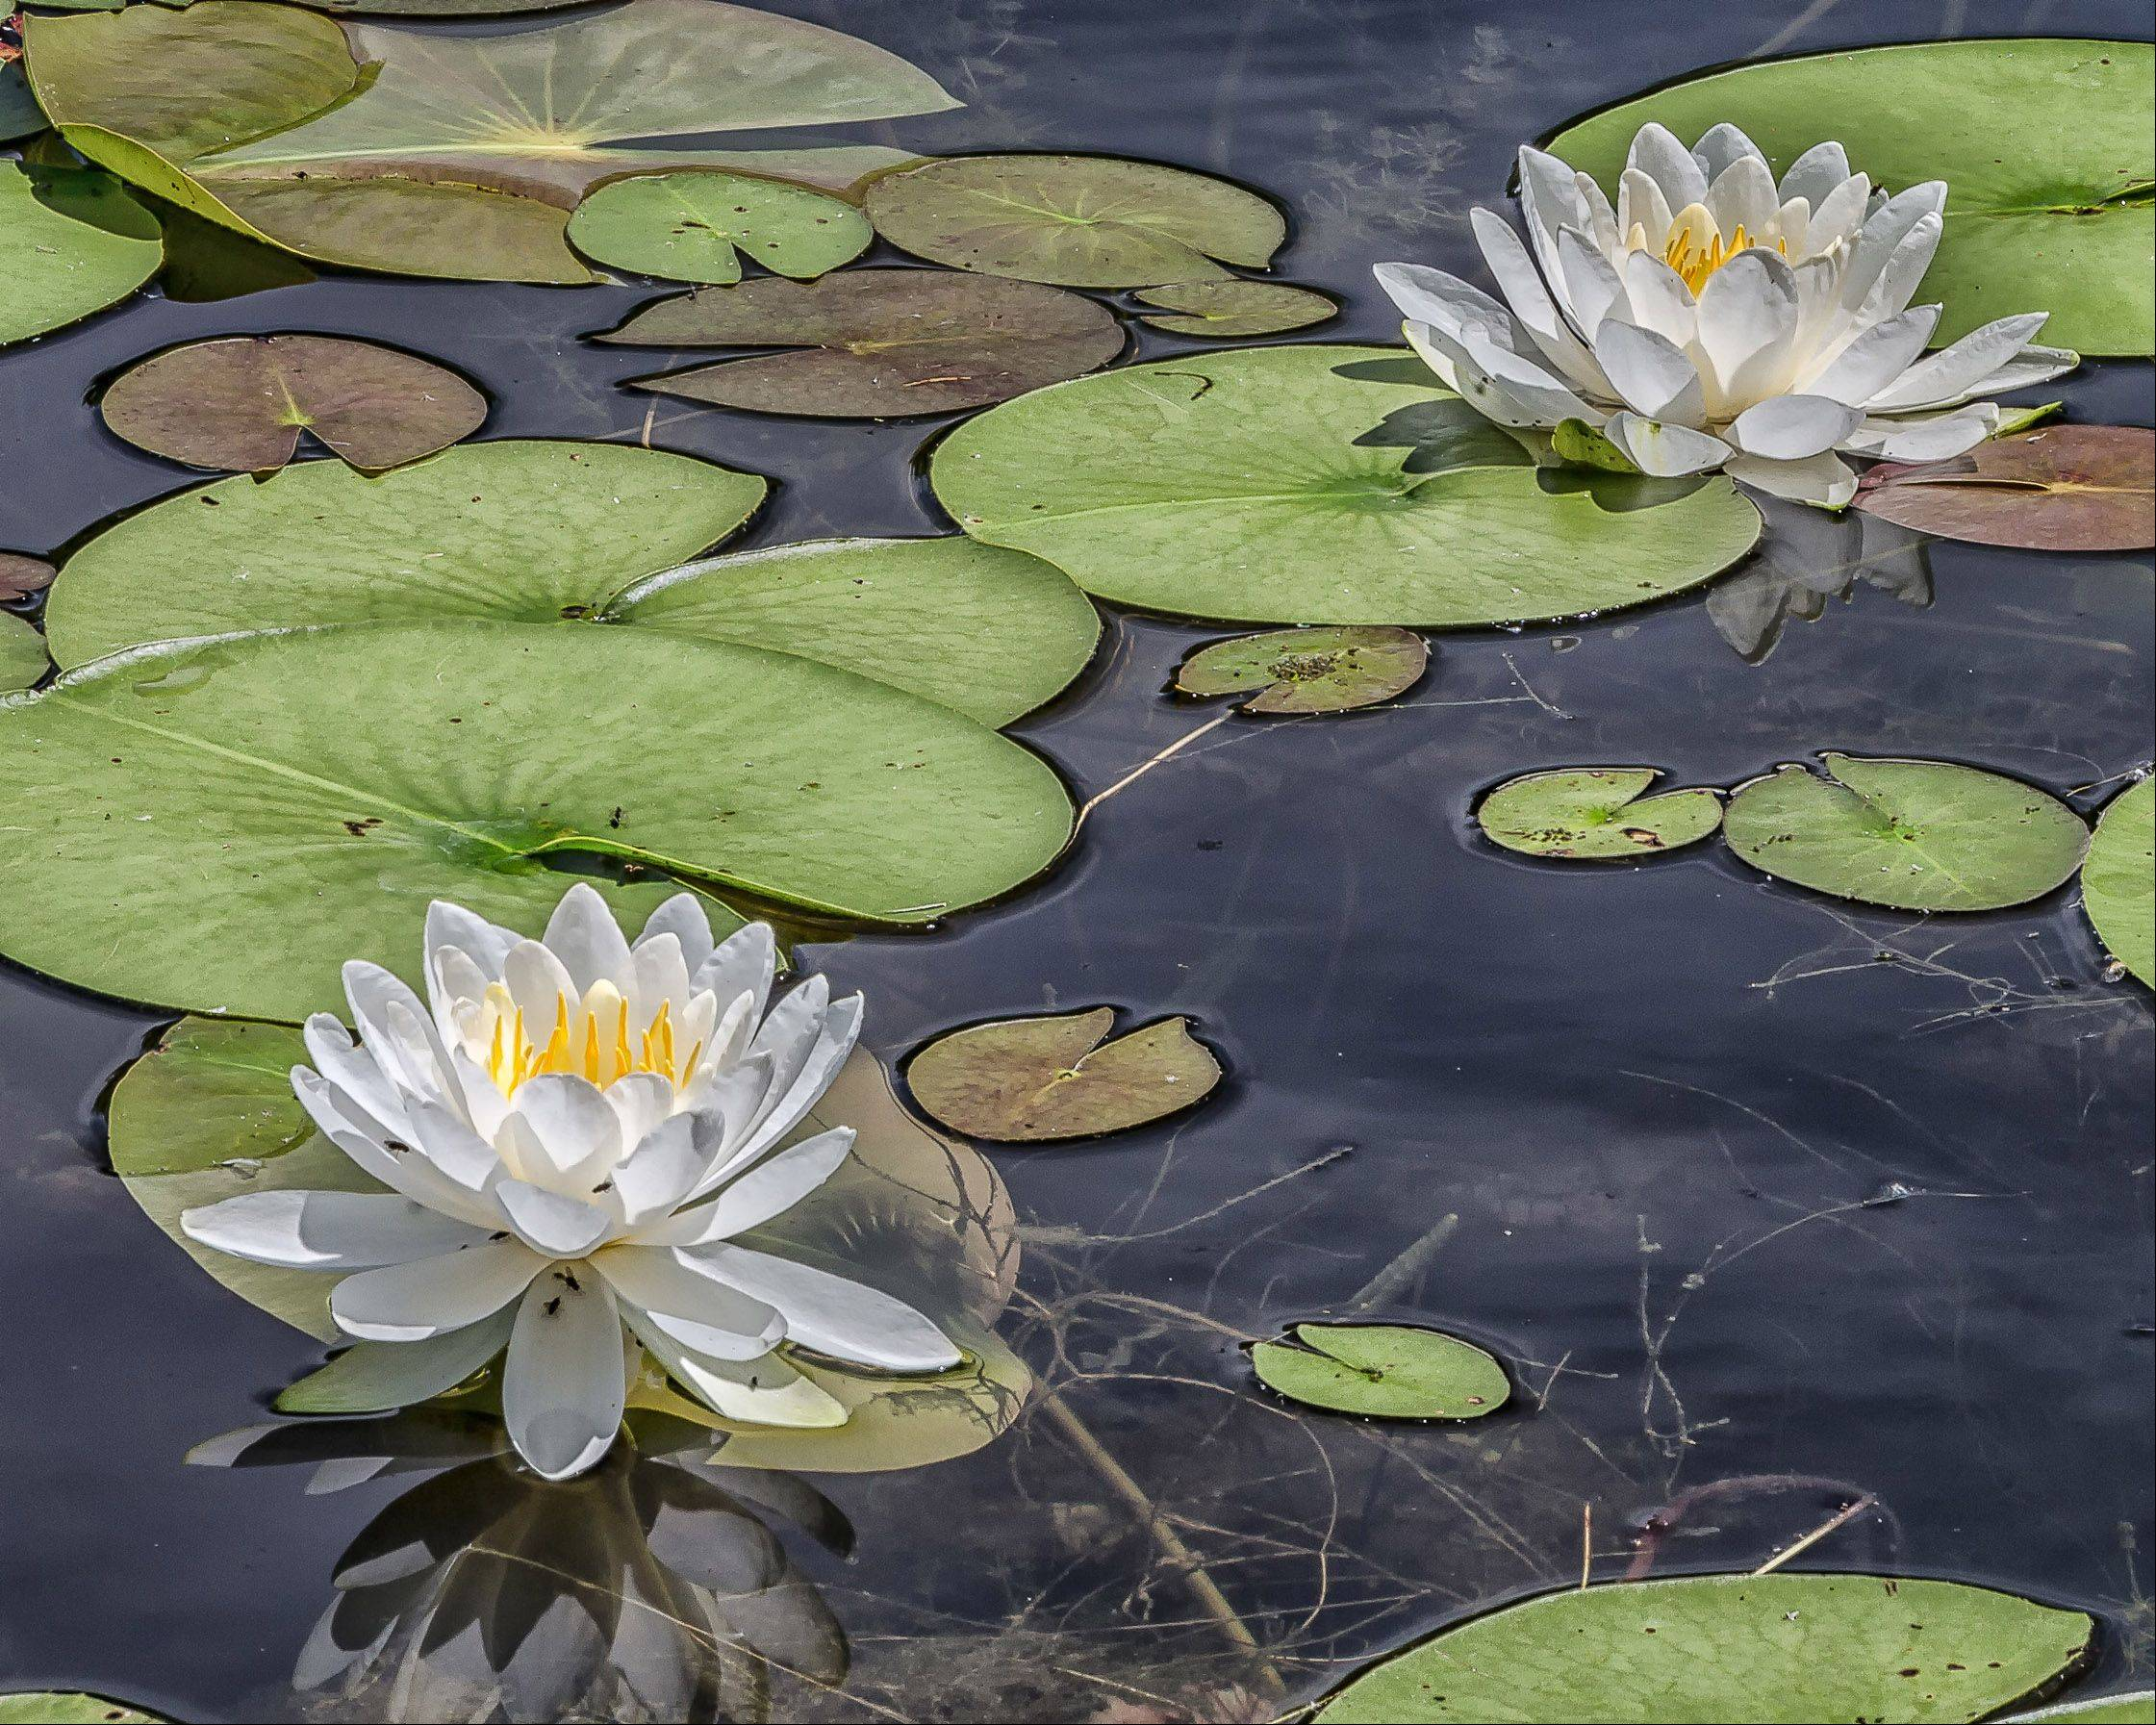 Lily pads in the Grant Woods Forest Preserve pond last week.